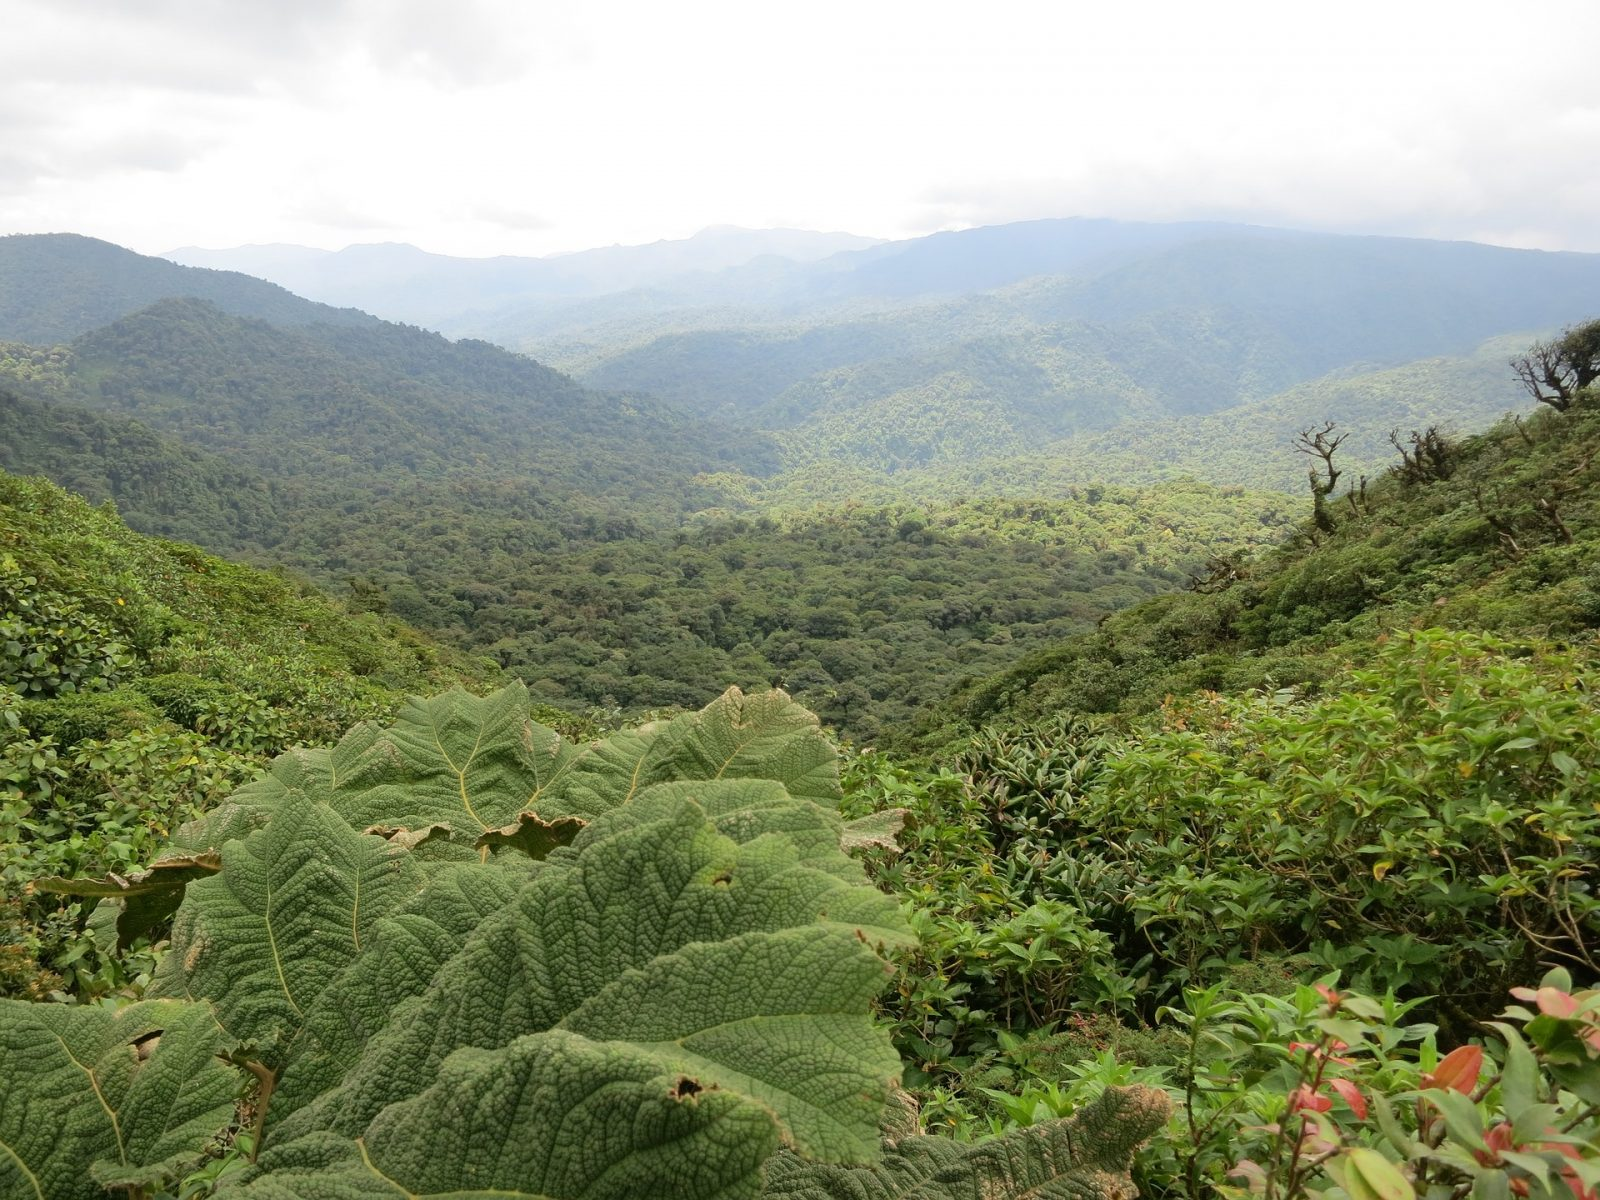 There are so many things to do in Monteverde Costa Rica